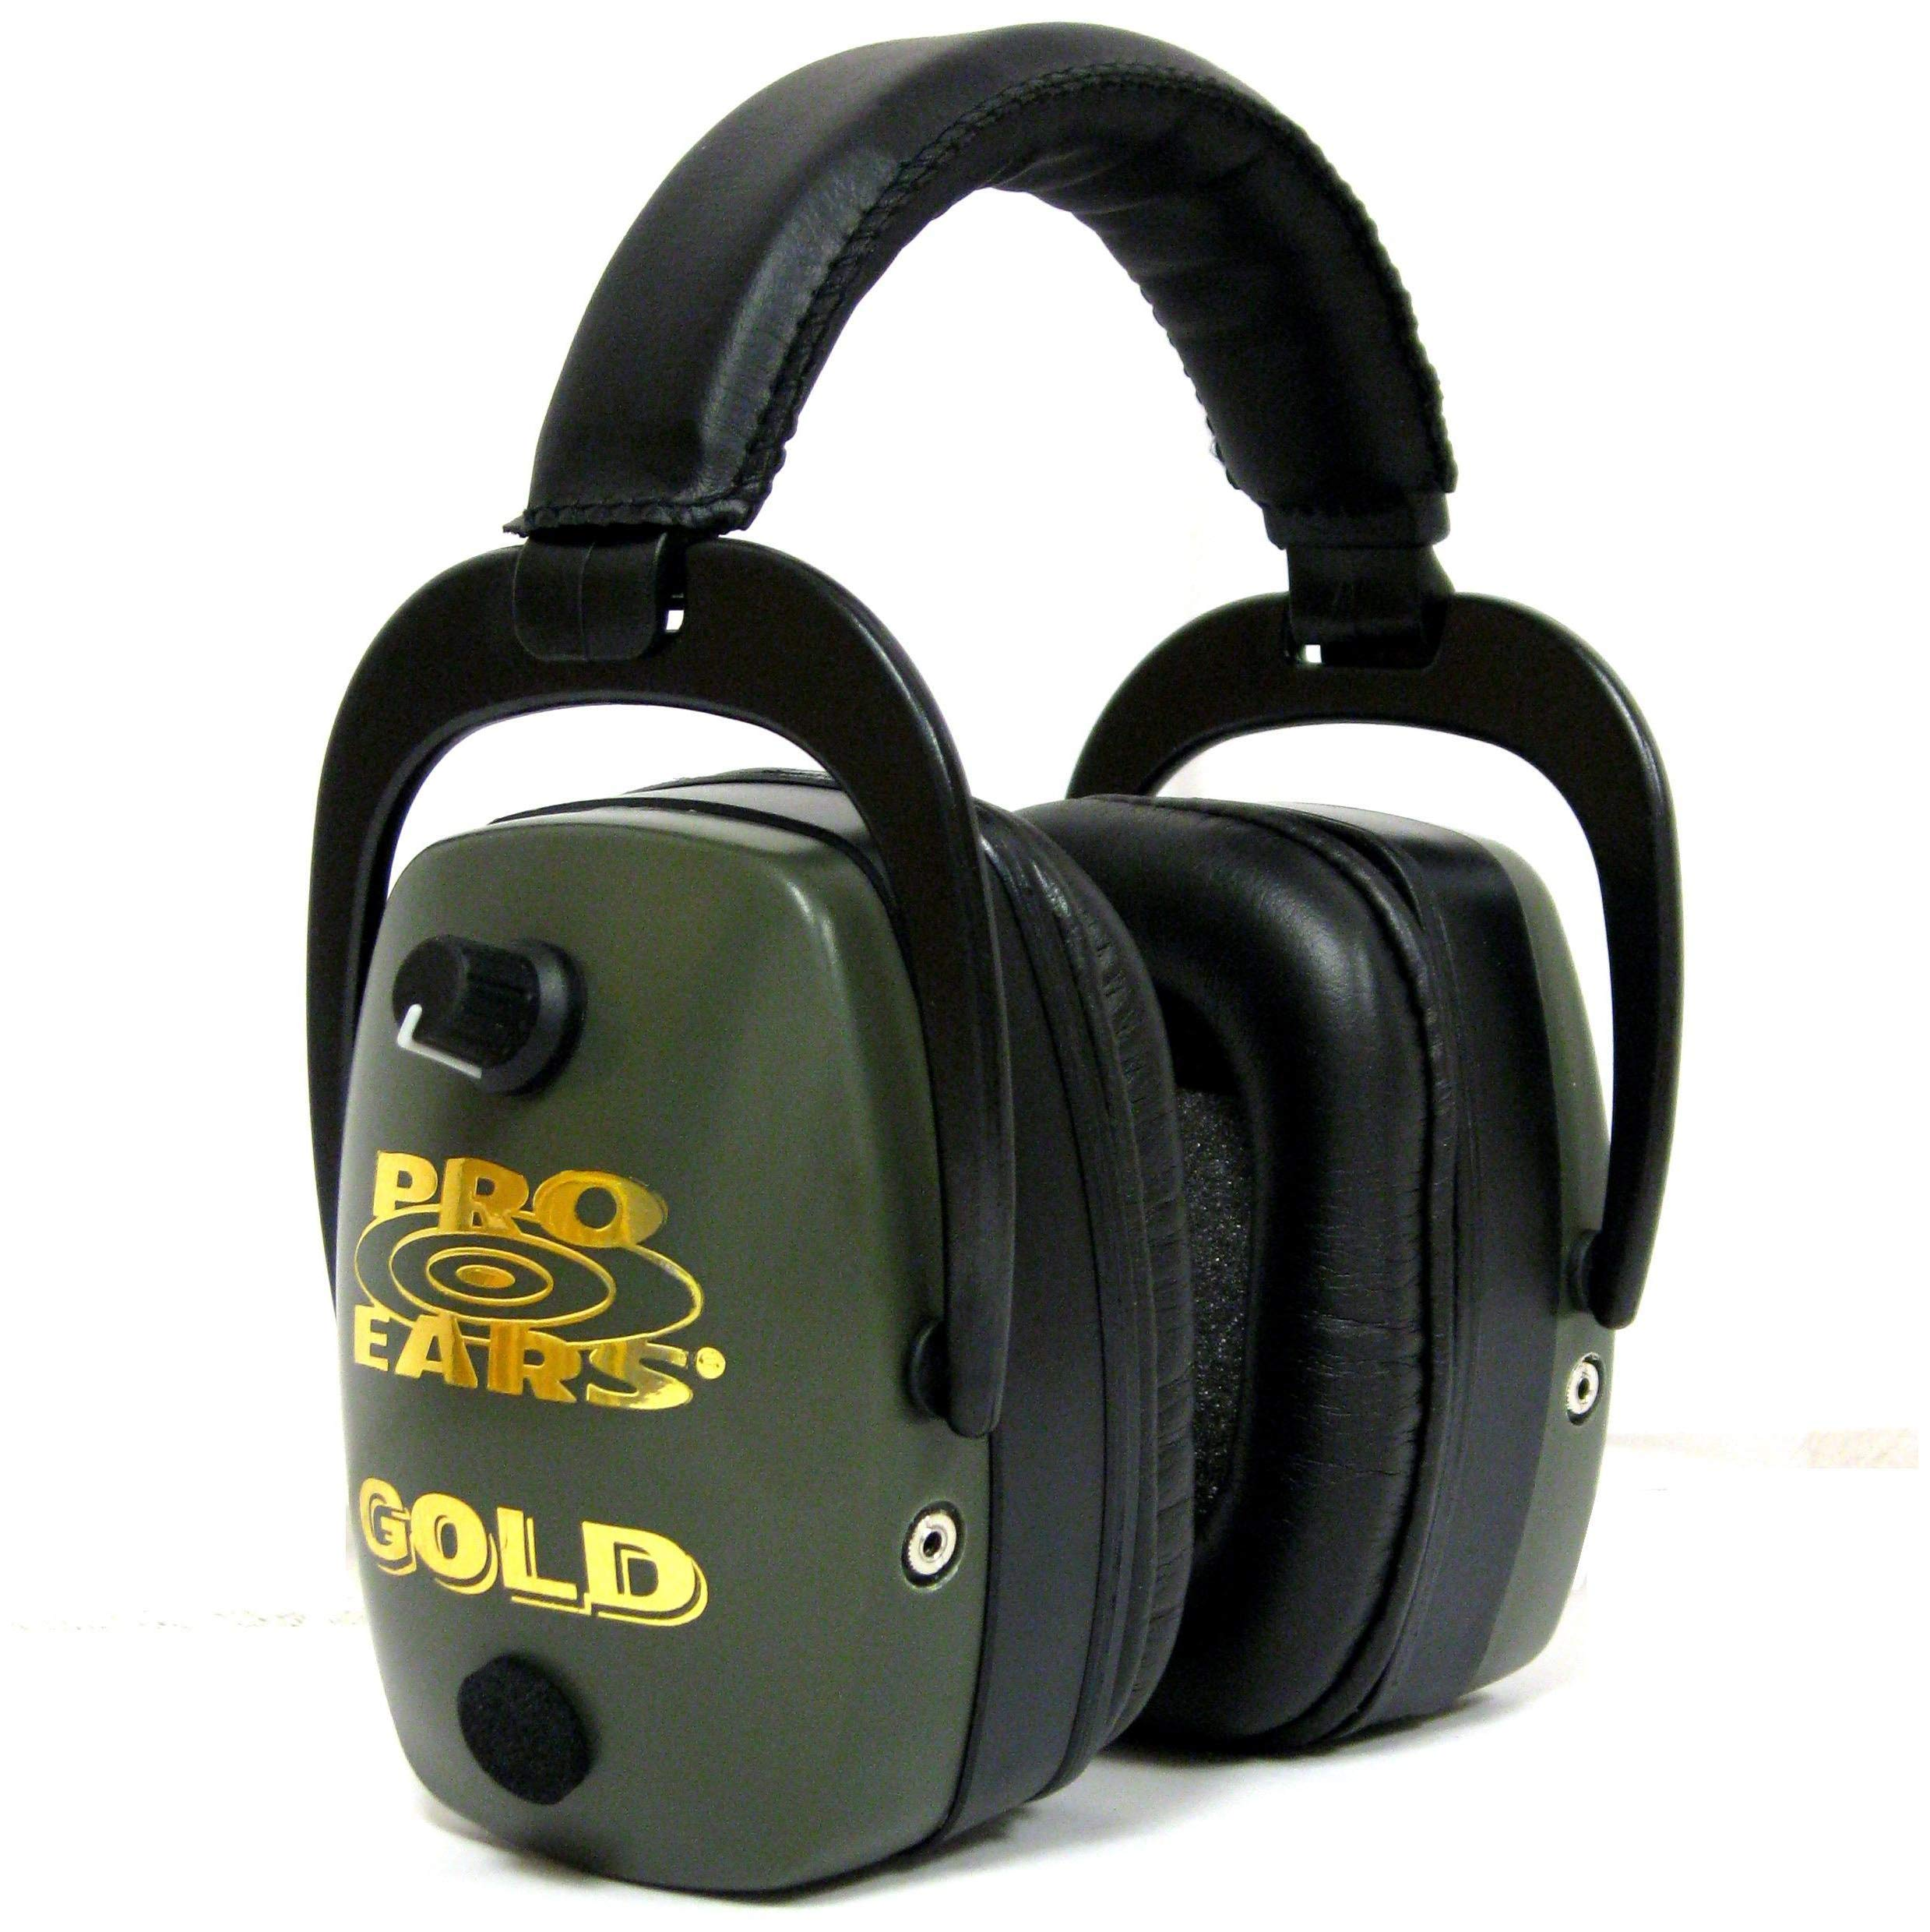 Pro Ears Pro Mag Gold Hearing Protection and Amplification Ear Muffs, Green